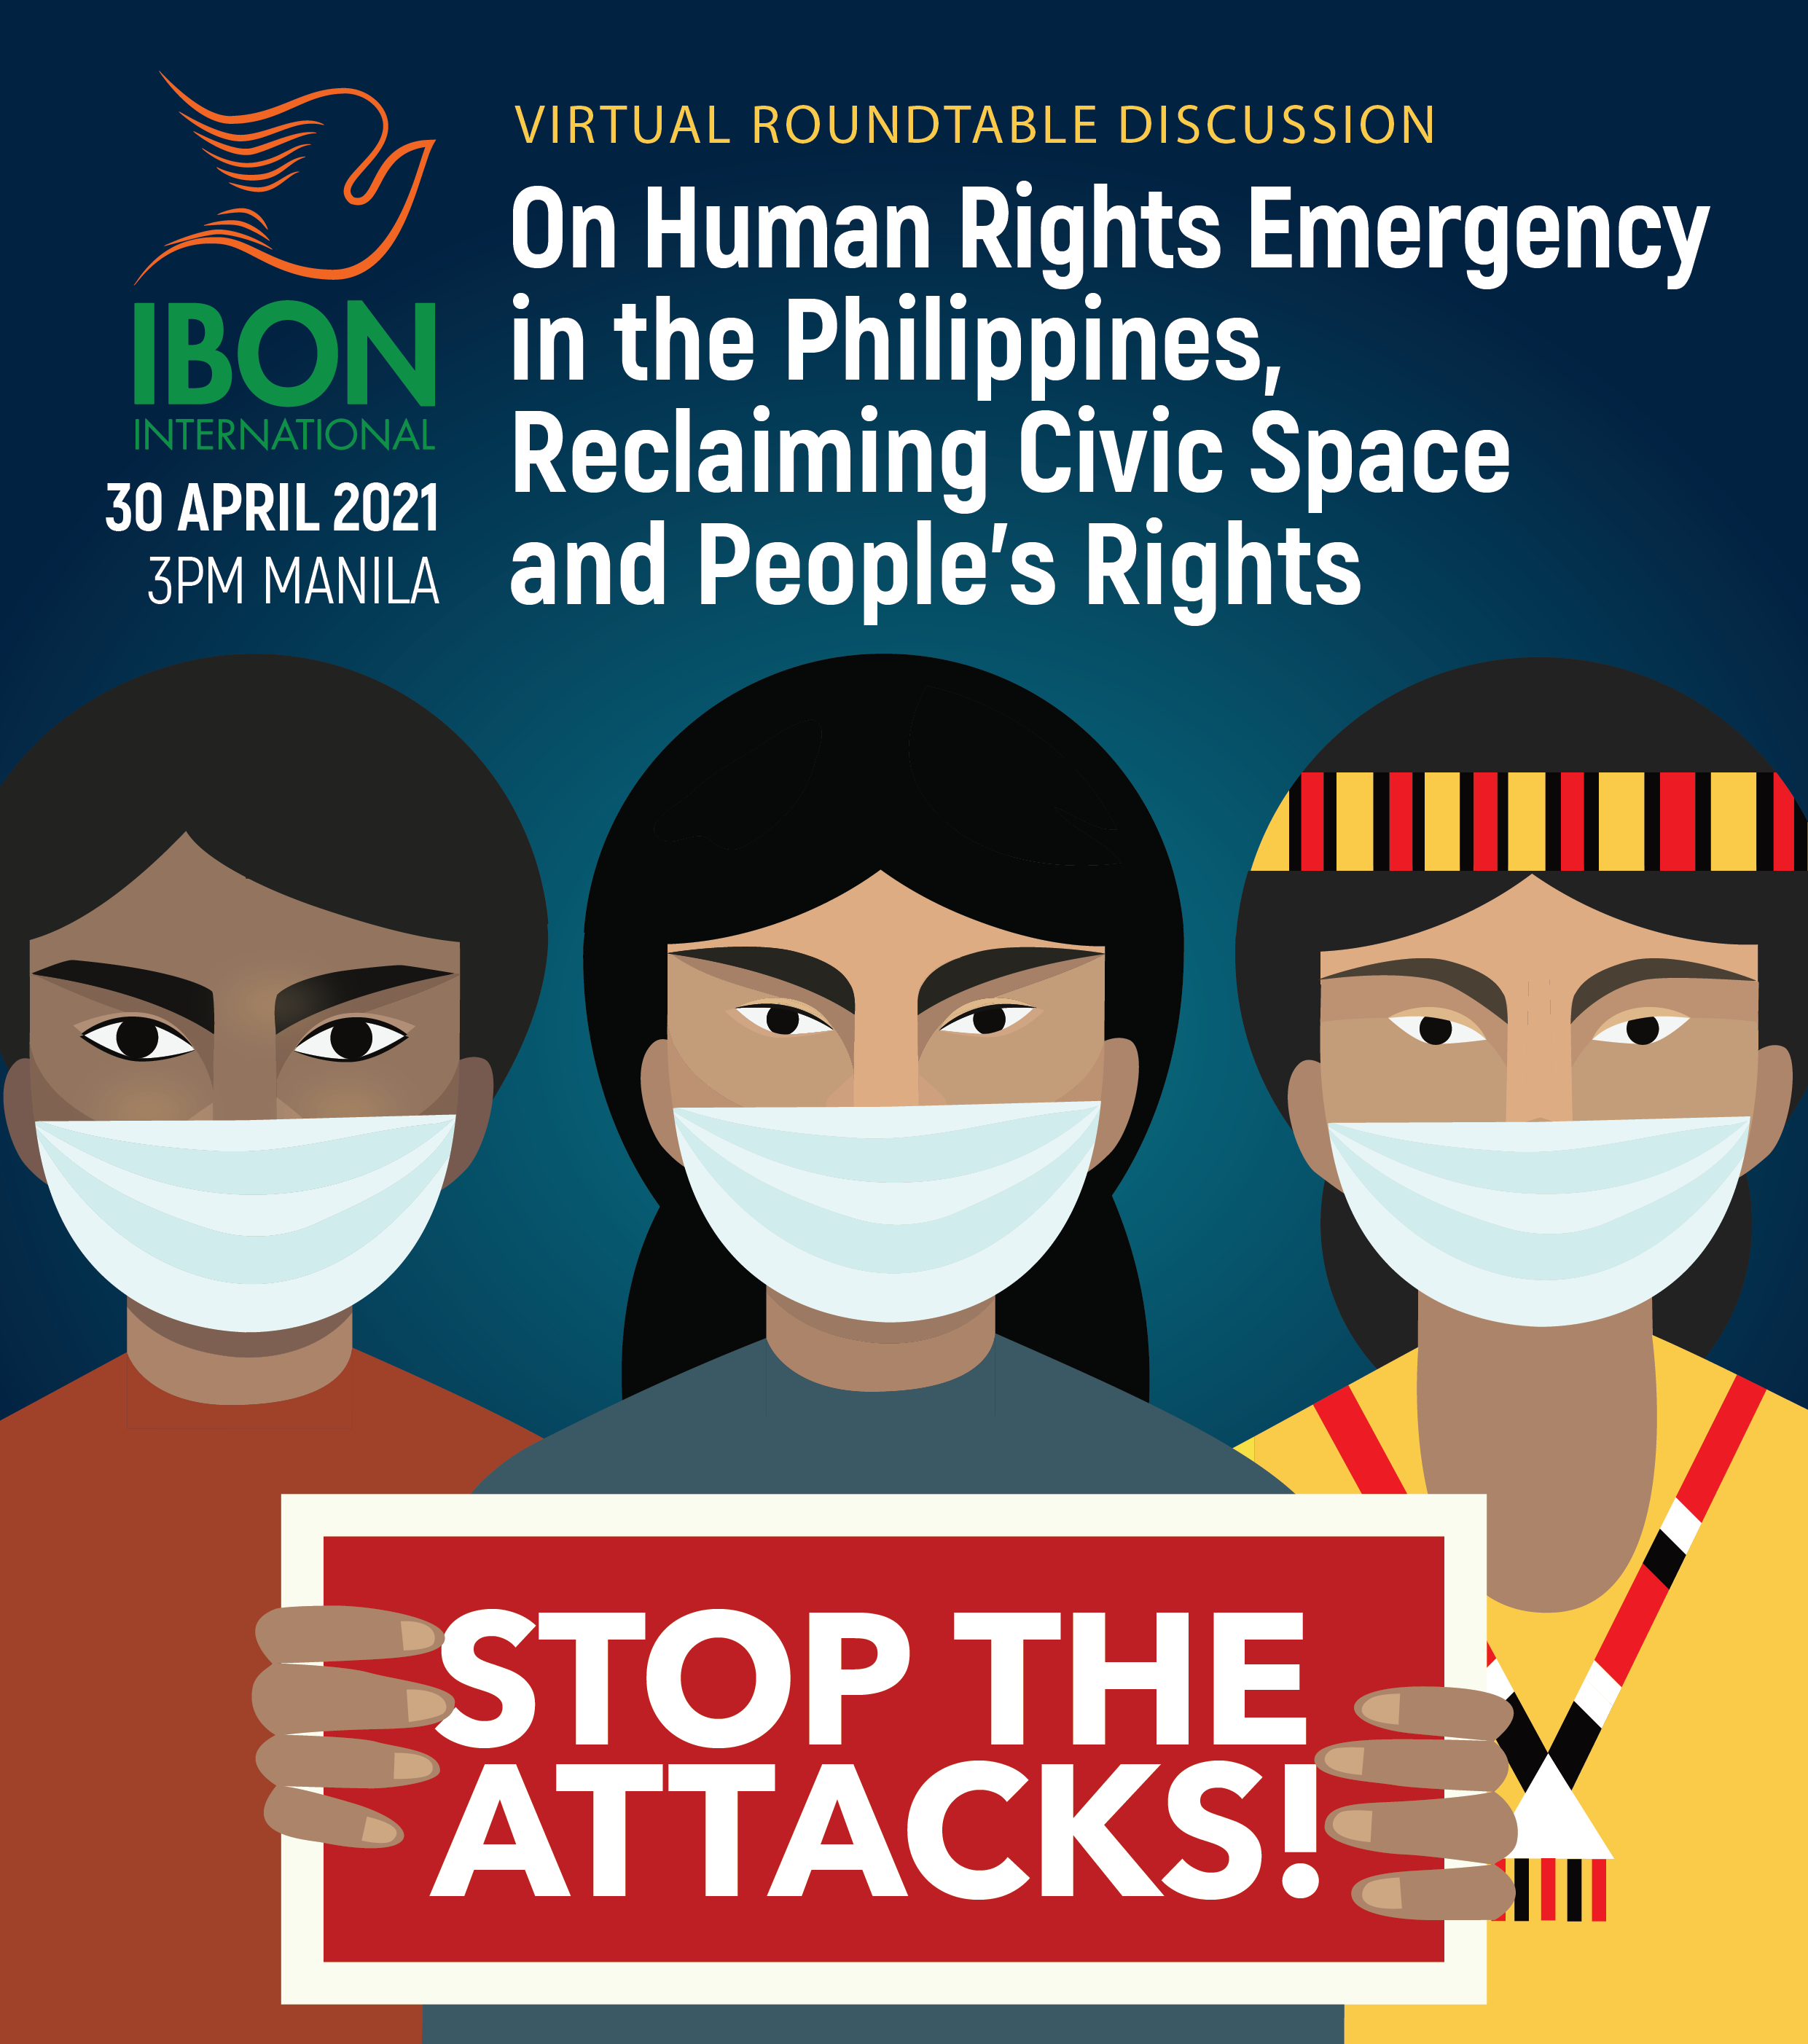 Virtual Roundtable Discussion on Human Rights Emergency in the Philippines, Reclaiming Civic Space and People's Rights (April 30)